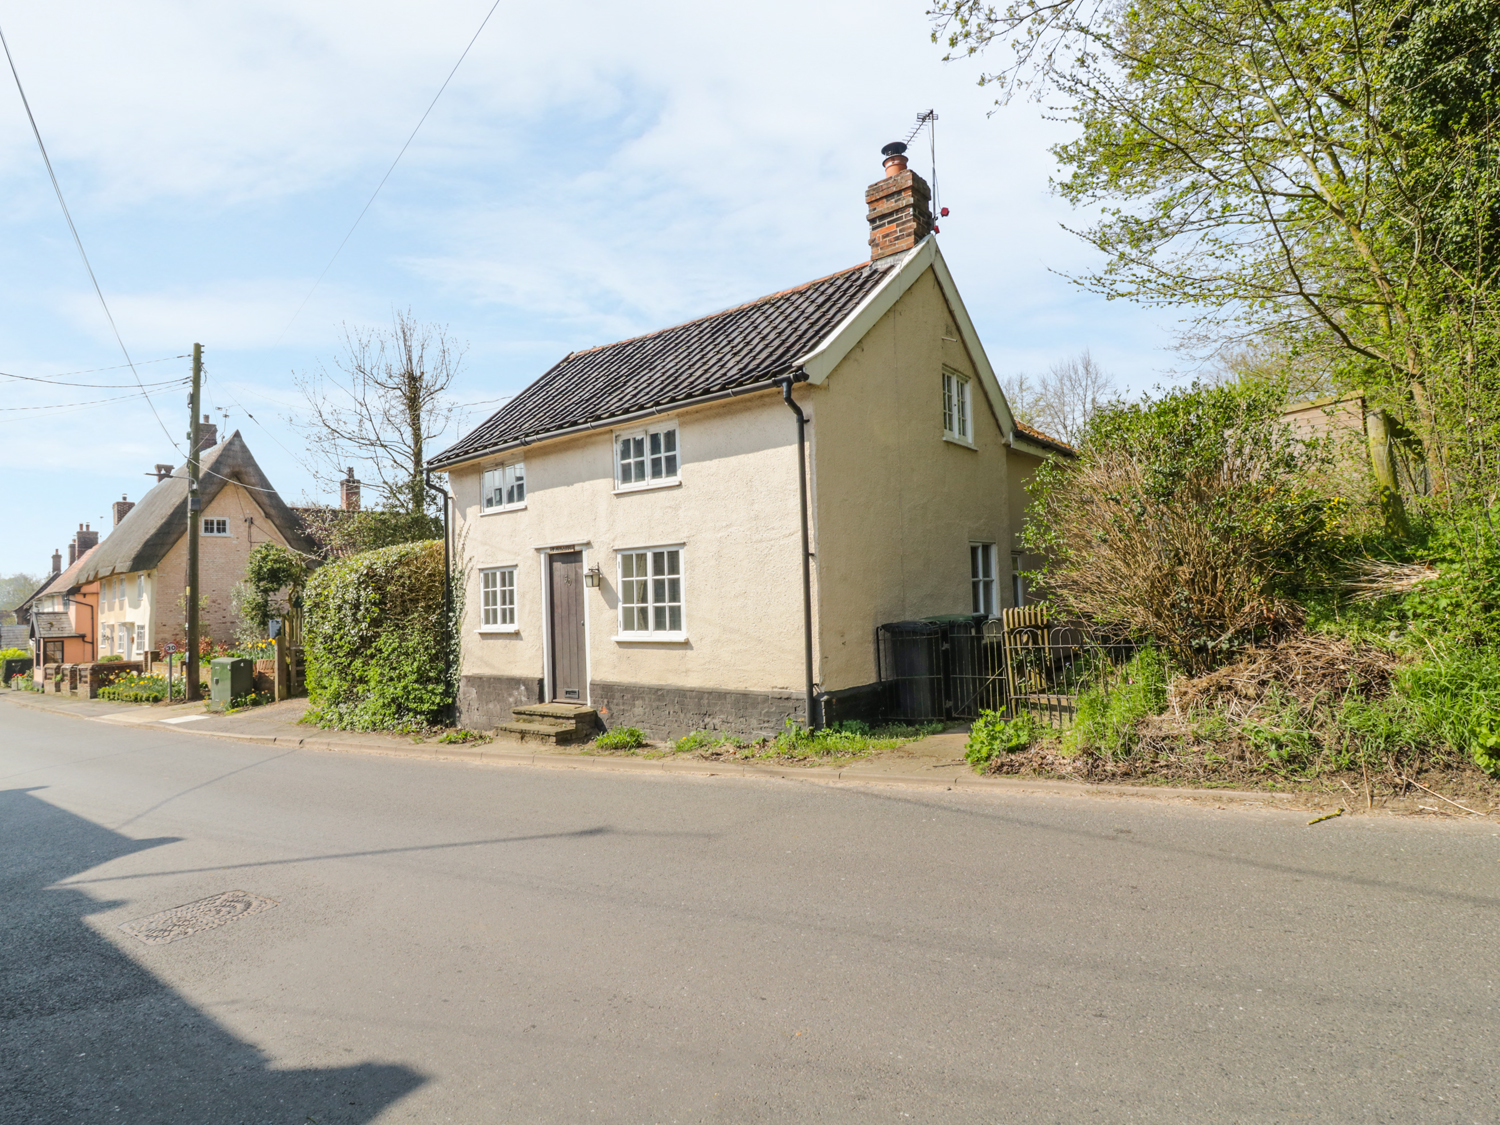 3 bedroom Cottage for rent in Diss